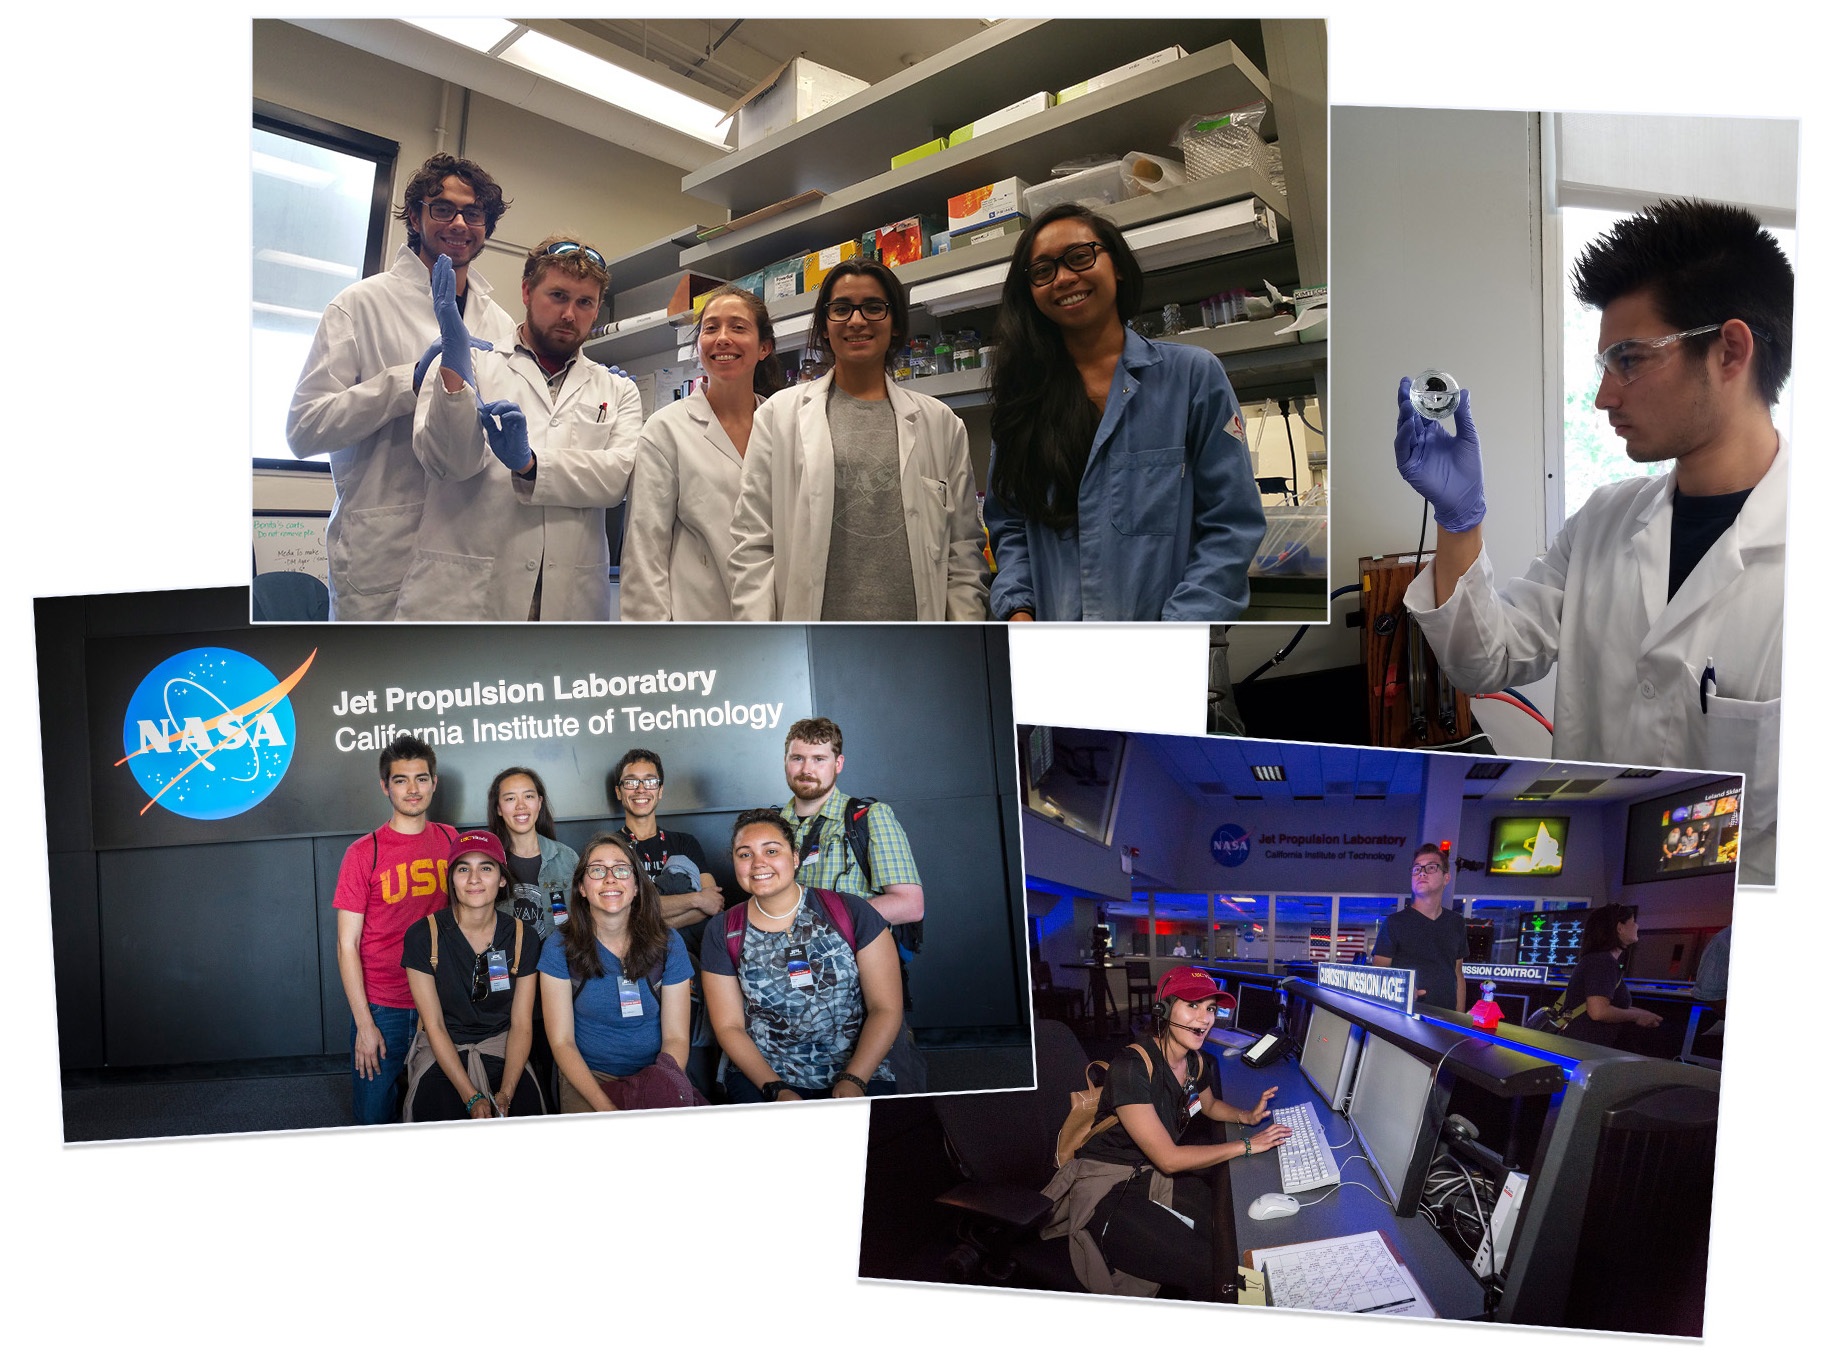 "Clockwise from top: Charbel Bou Khalil, Stephen Hoefler, Hillary Smith, and Angelica Escobar with mentor Karla Abuyen in the Amend lab; Alex Cervantes; Angelica Escobar at Curiosity ""mission control""; Alex Cervantes, Karen Ho, Chris Neely, Stephen Hoefler, Angelica Escobar, Hillary Smith, and Raquel Diaz at JPL. Source: J. Amend/USC Image credit: None"